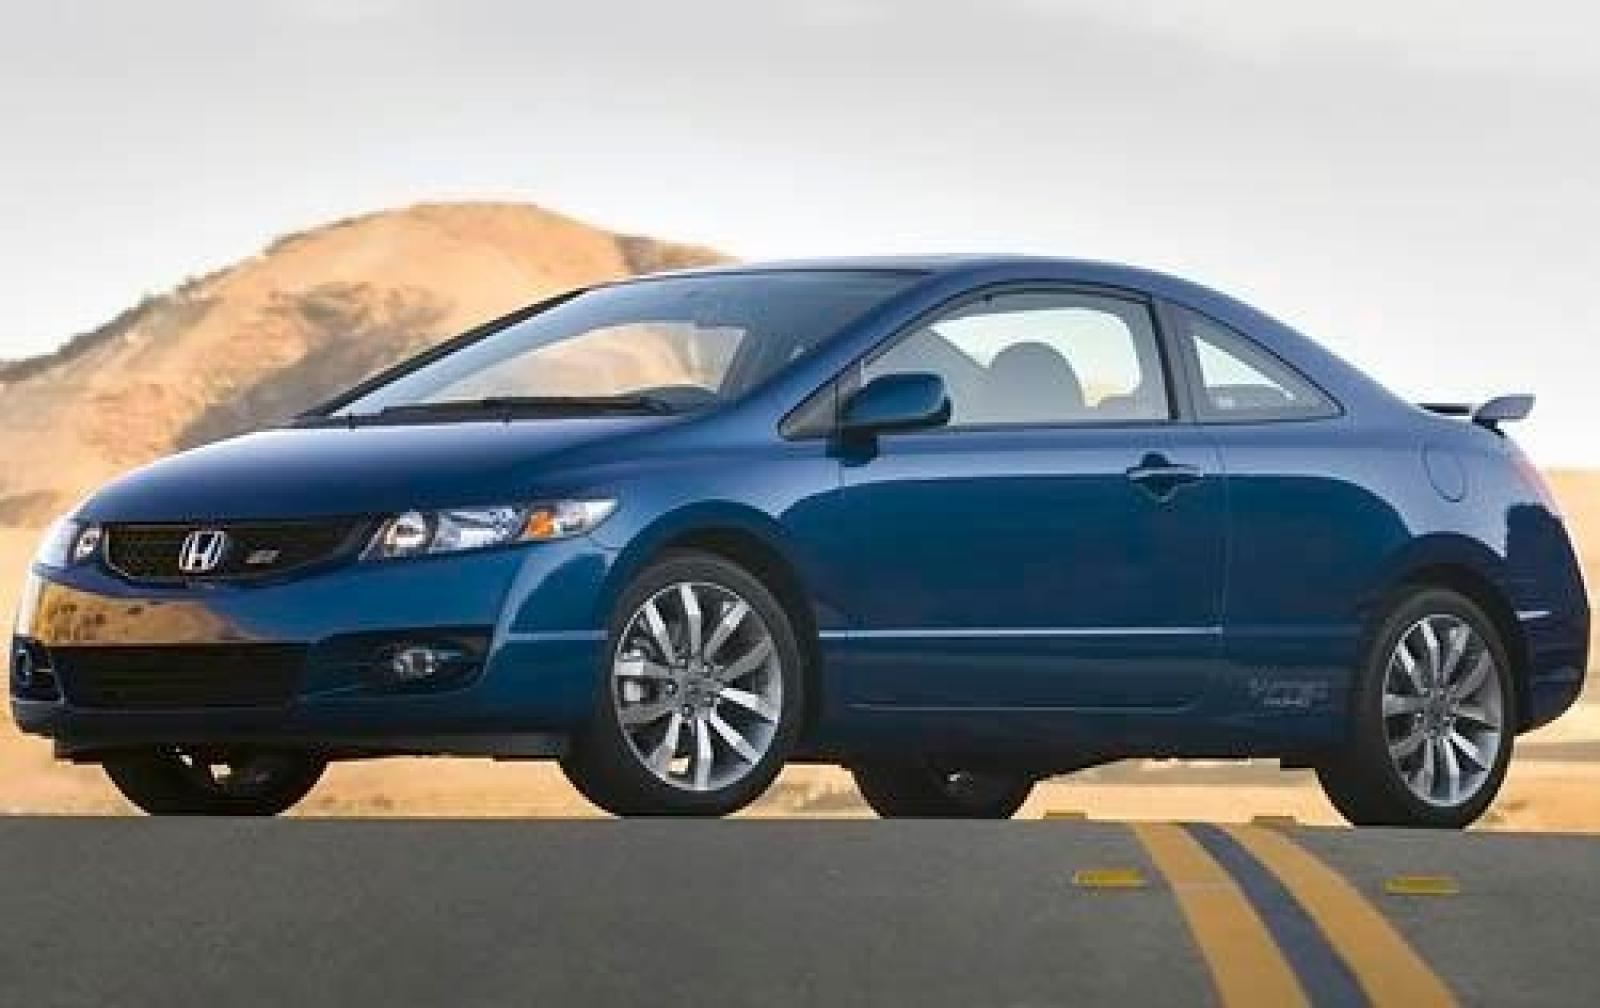 800 1024 1280 1600 origin 2010 Honda Civic ...